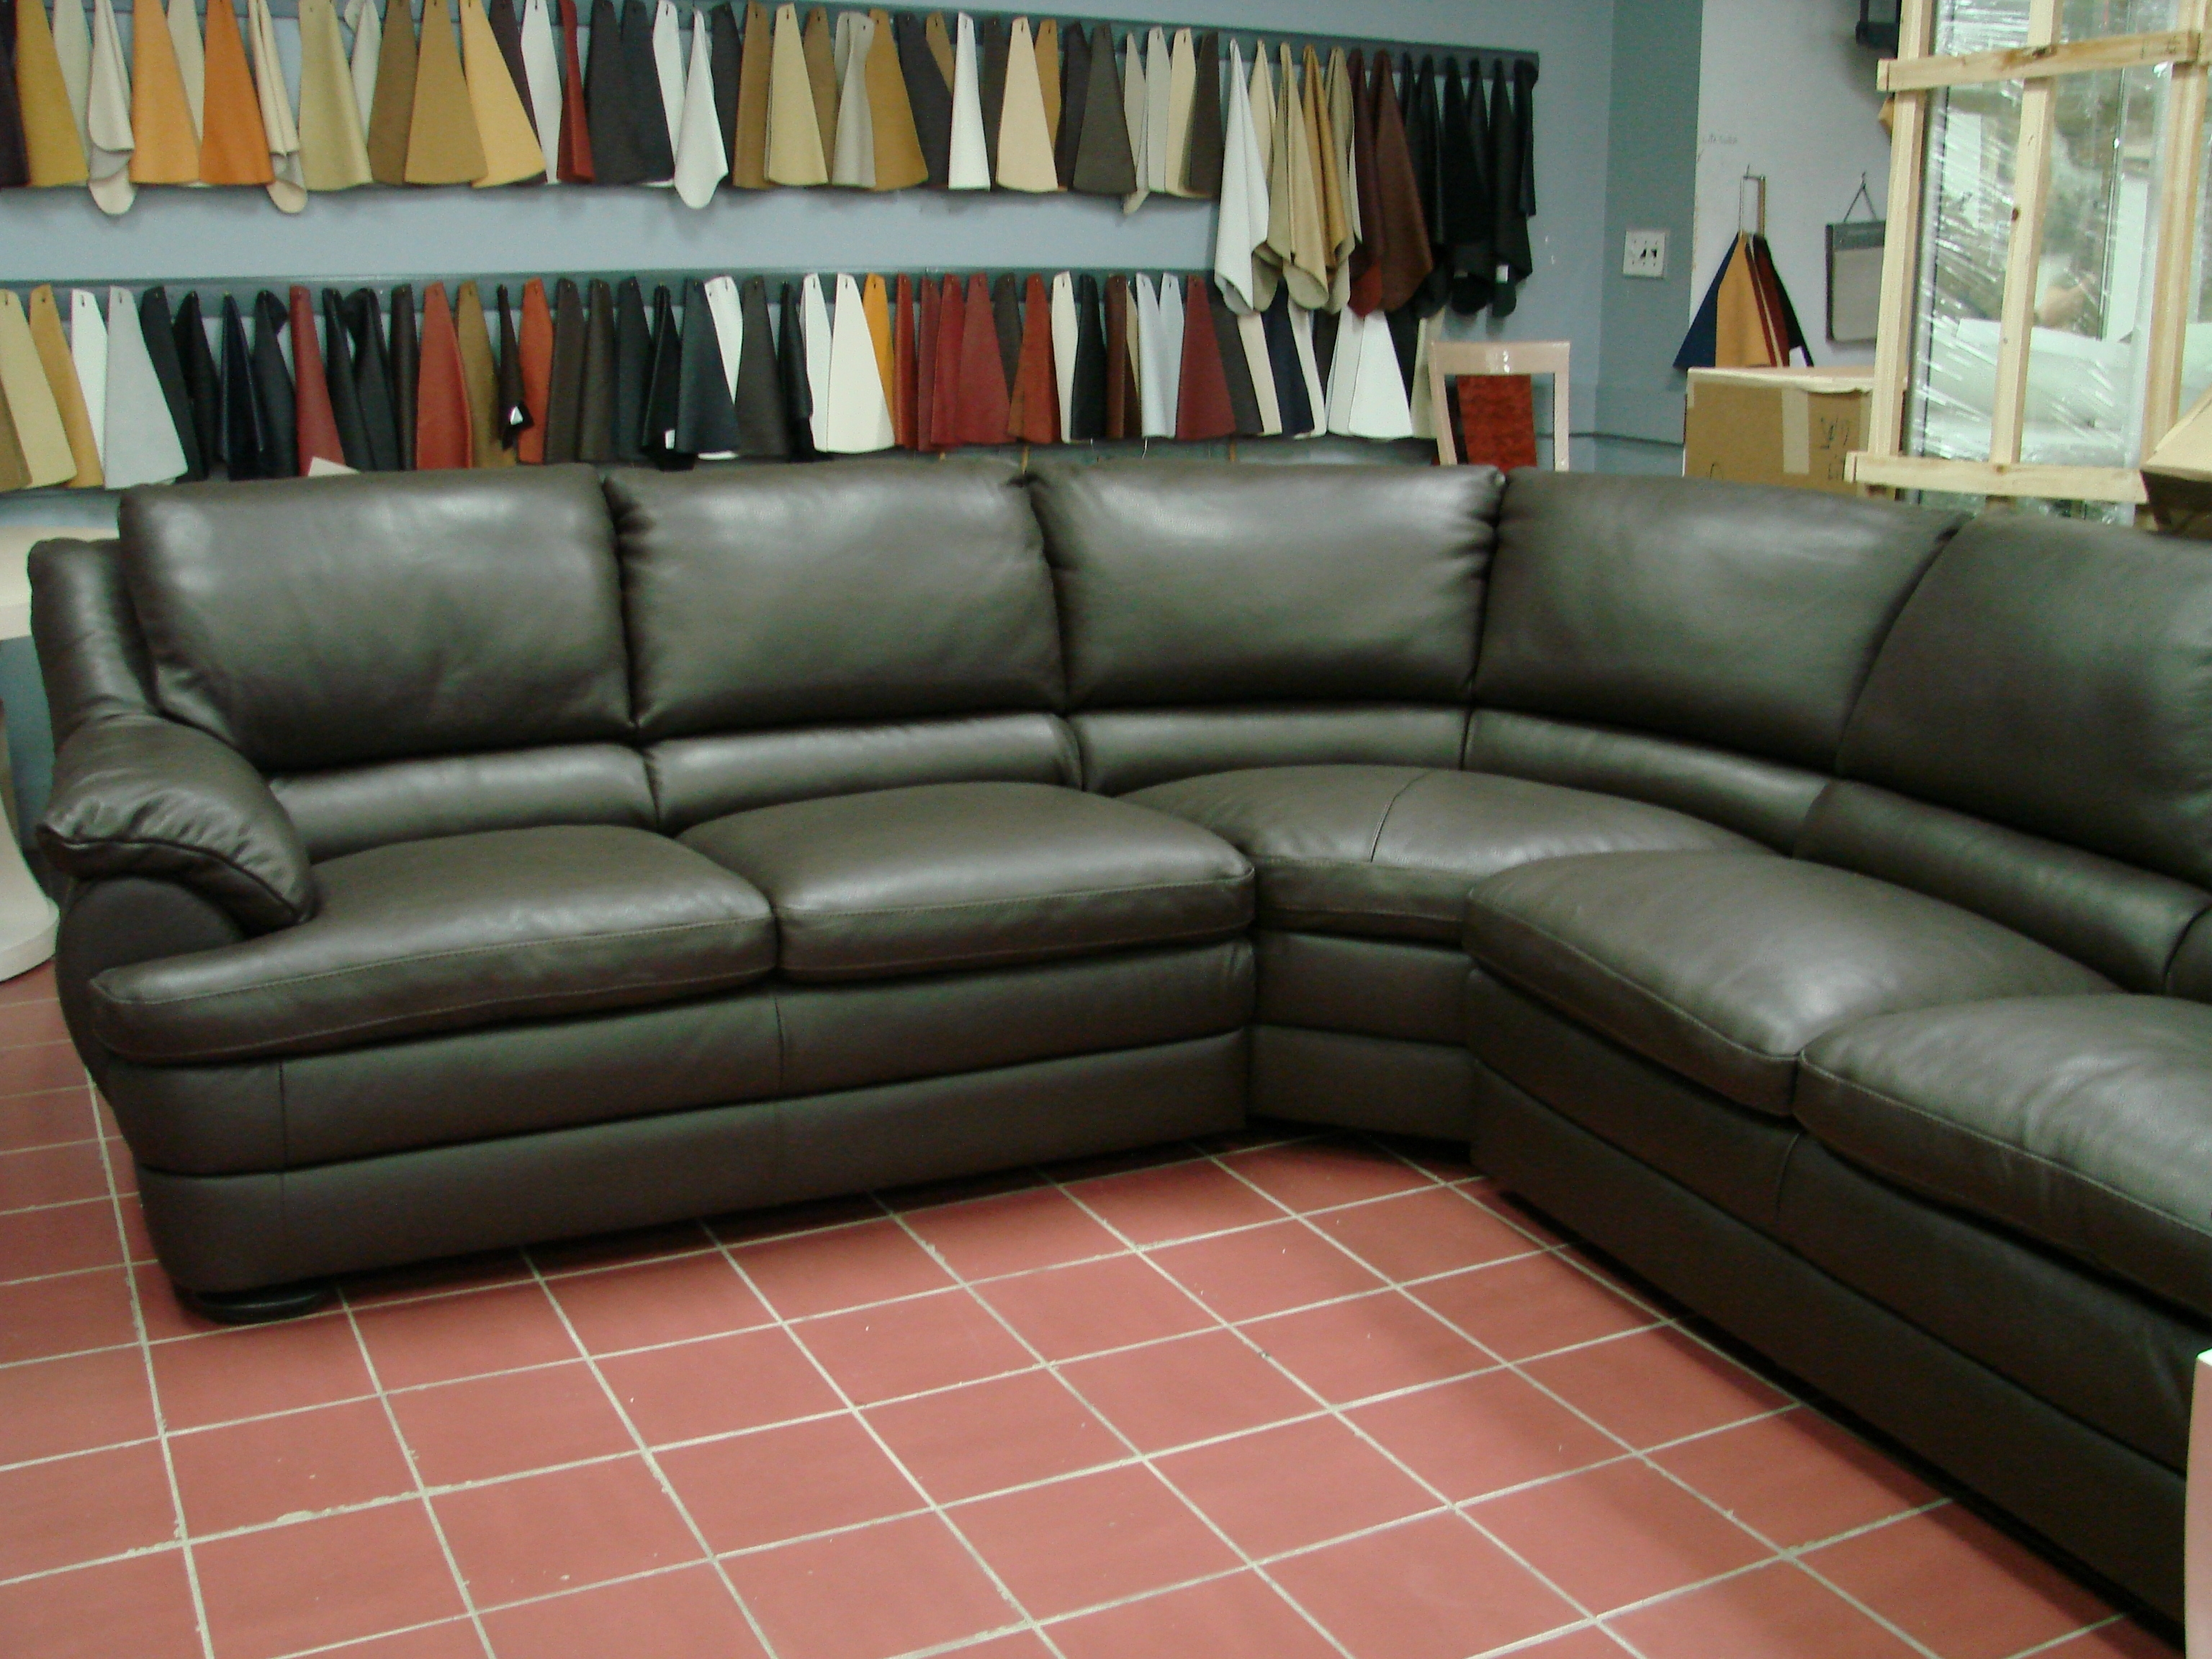 Leather Sectional Sofa With Recliners Sofas Ottawa For Sale Couch with regard to Ottawa Sale Sectional Sofas (Image 5 of 10)